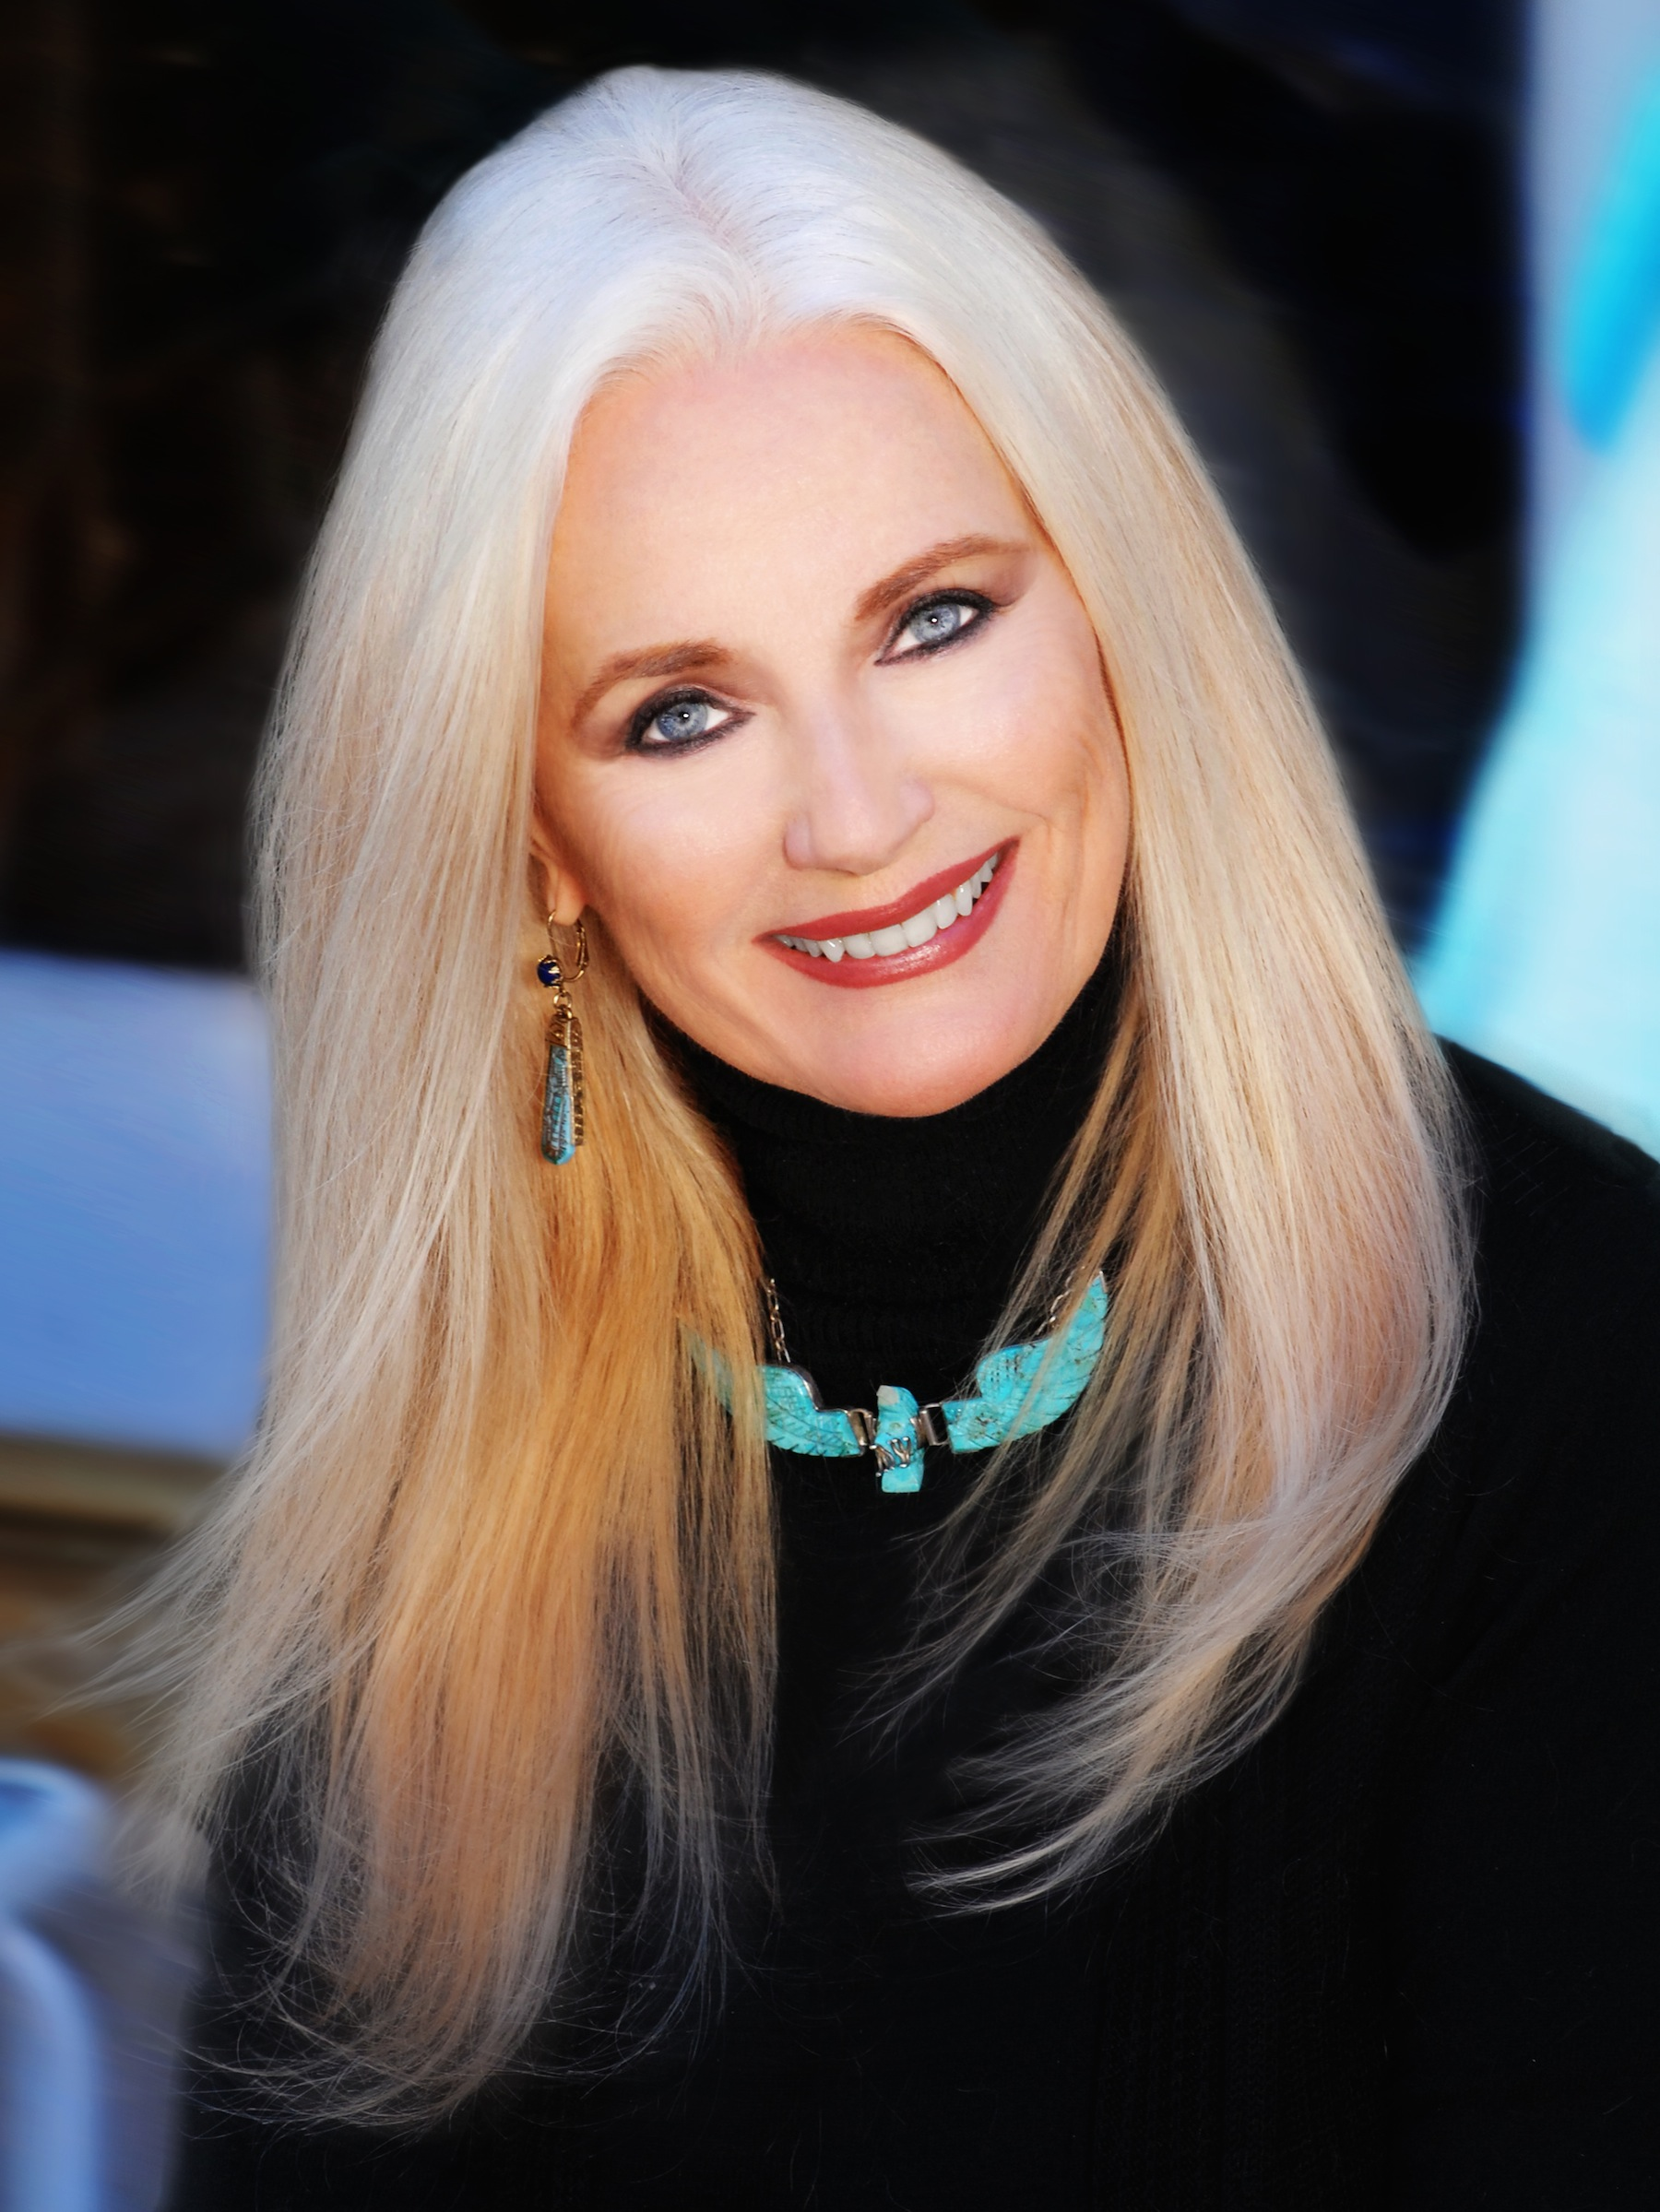 Celeste Yarnall on Life Changes With Filippo - Radio Show #241